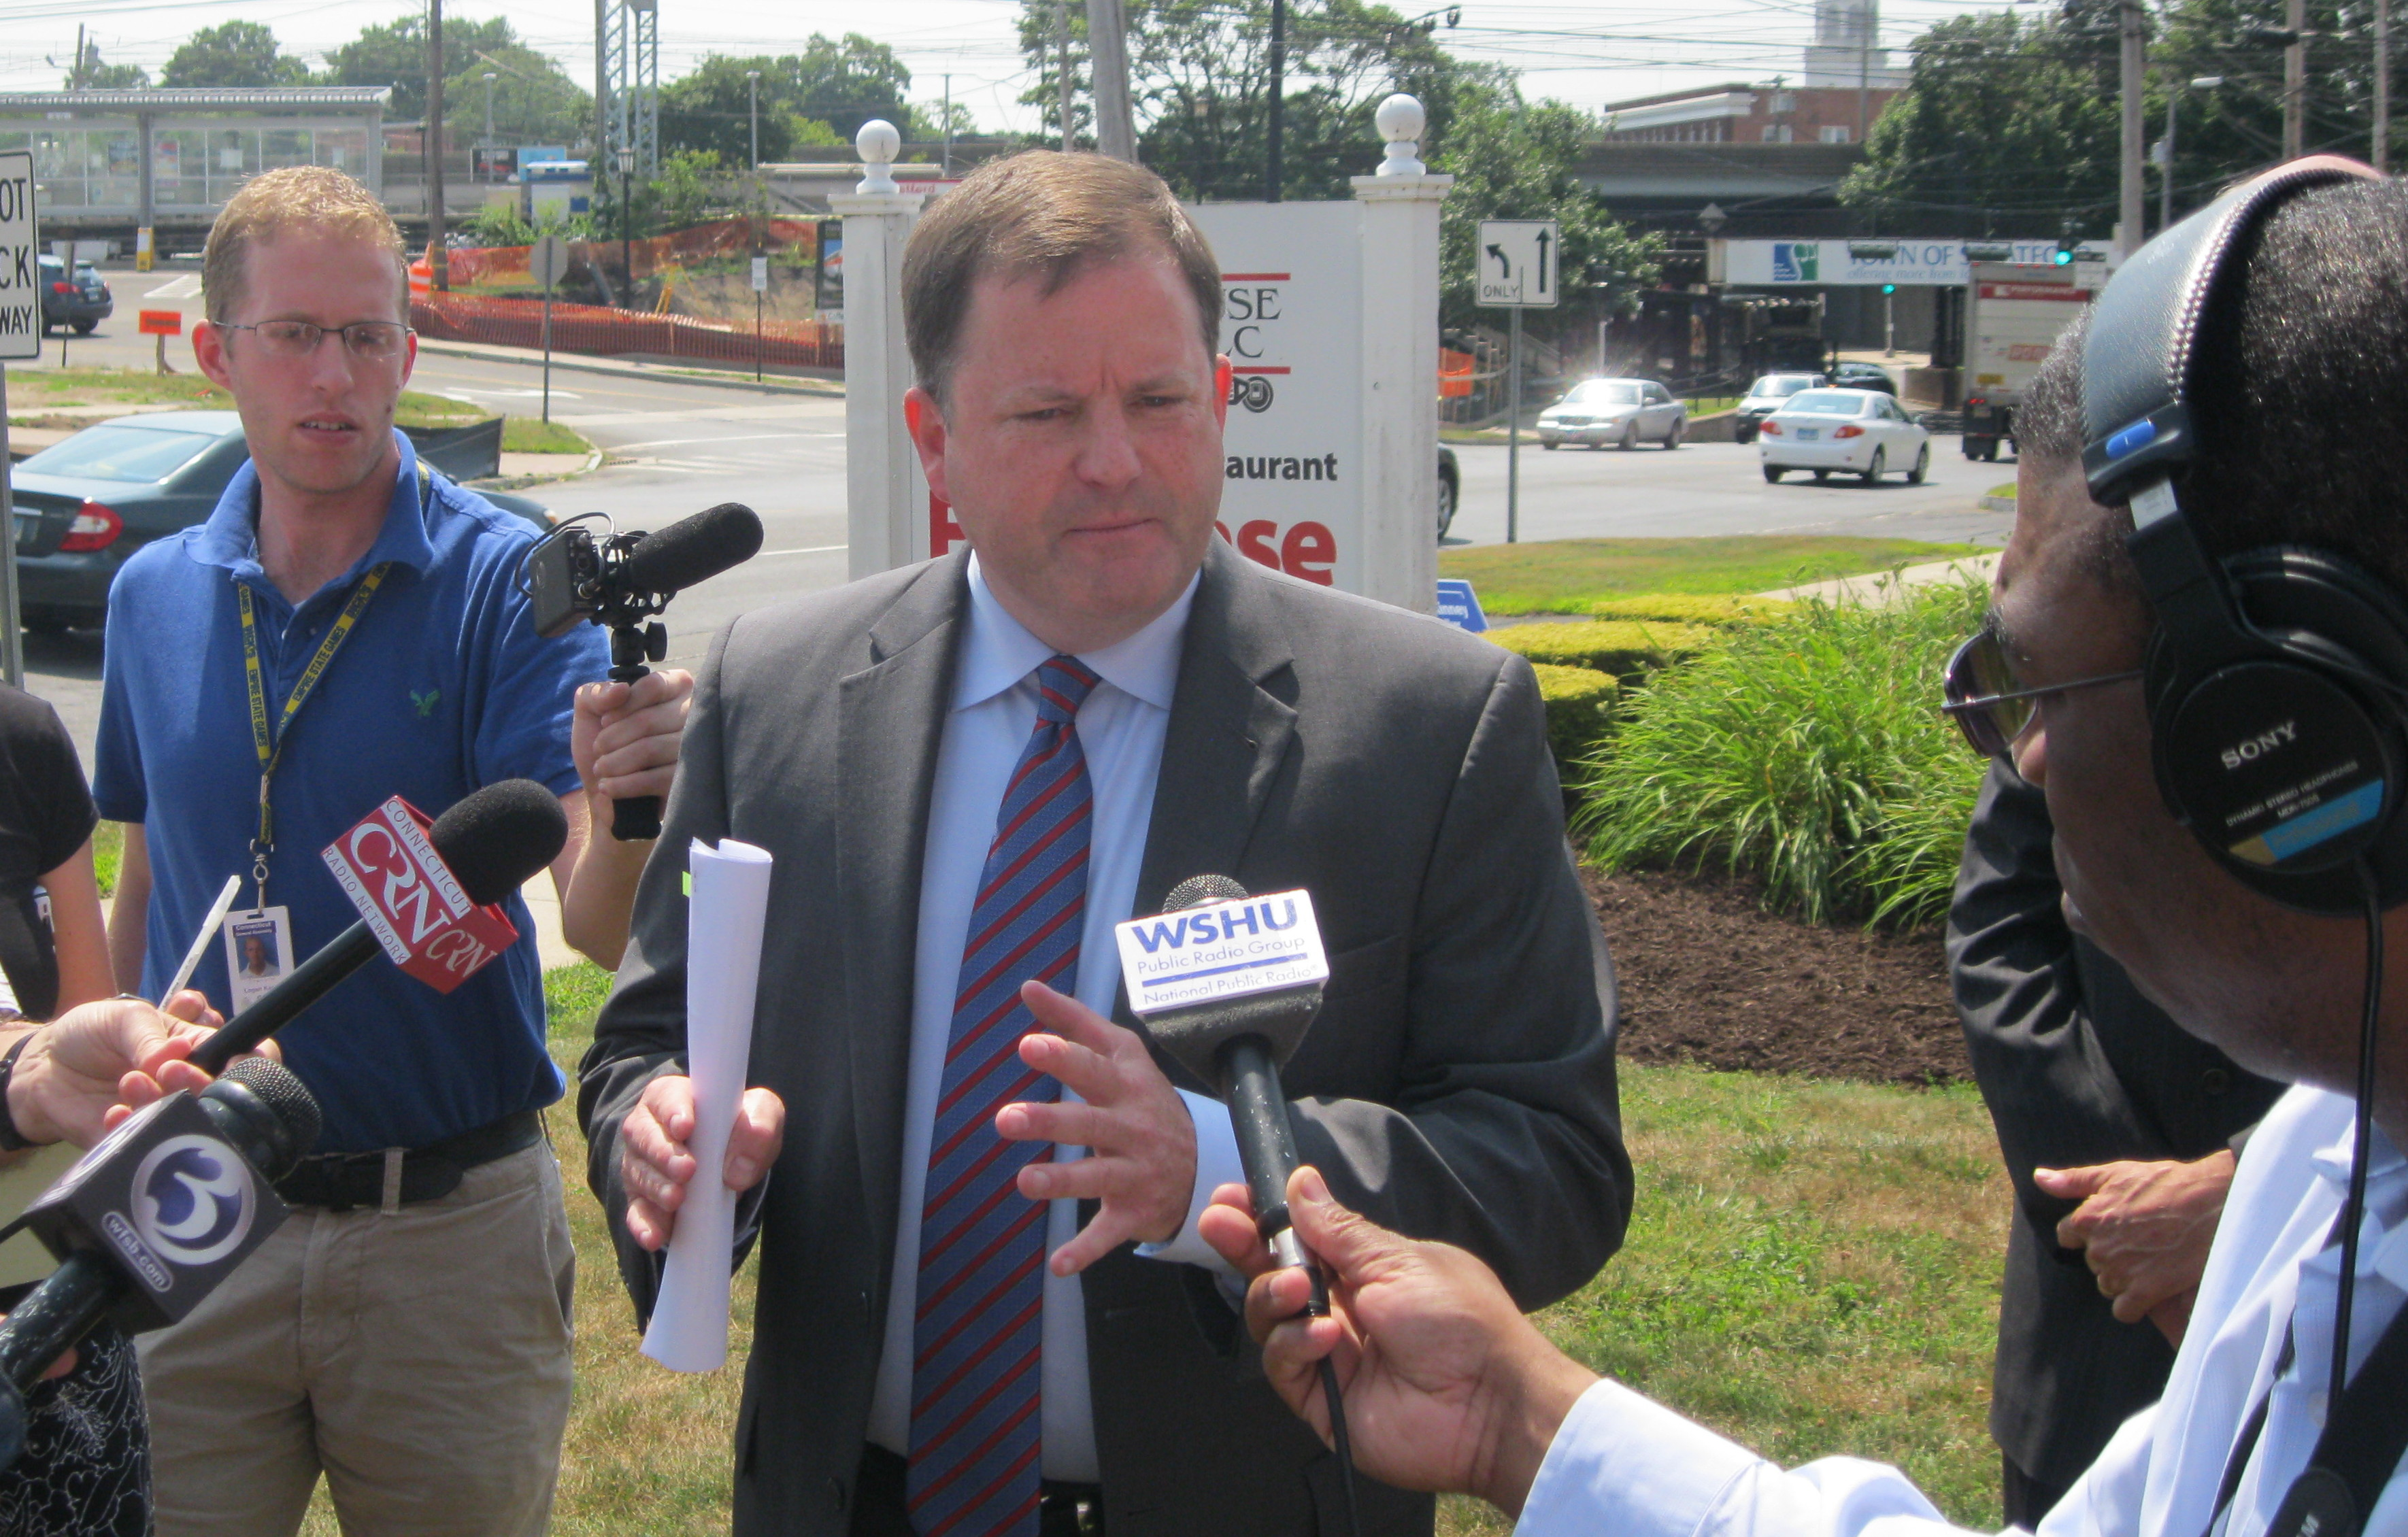 GOP gubernatorial candidate John McKinney discusses his tax cut plan outside of a Stratford shopping center